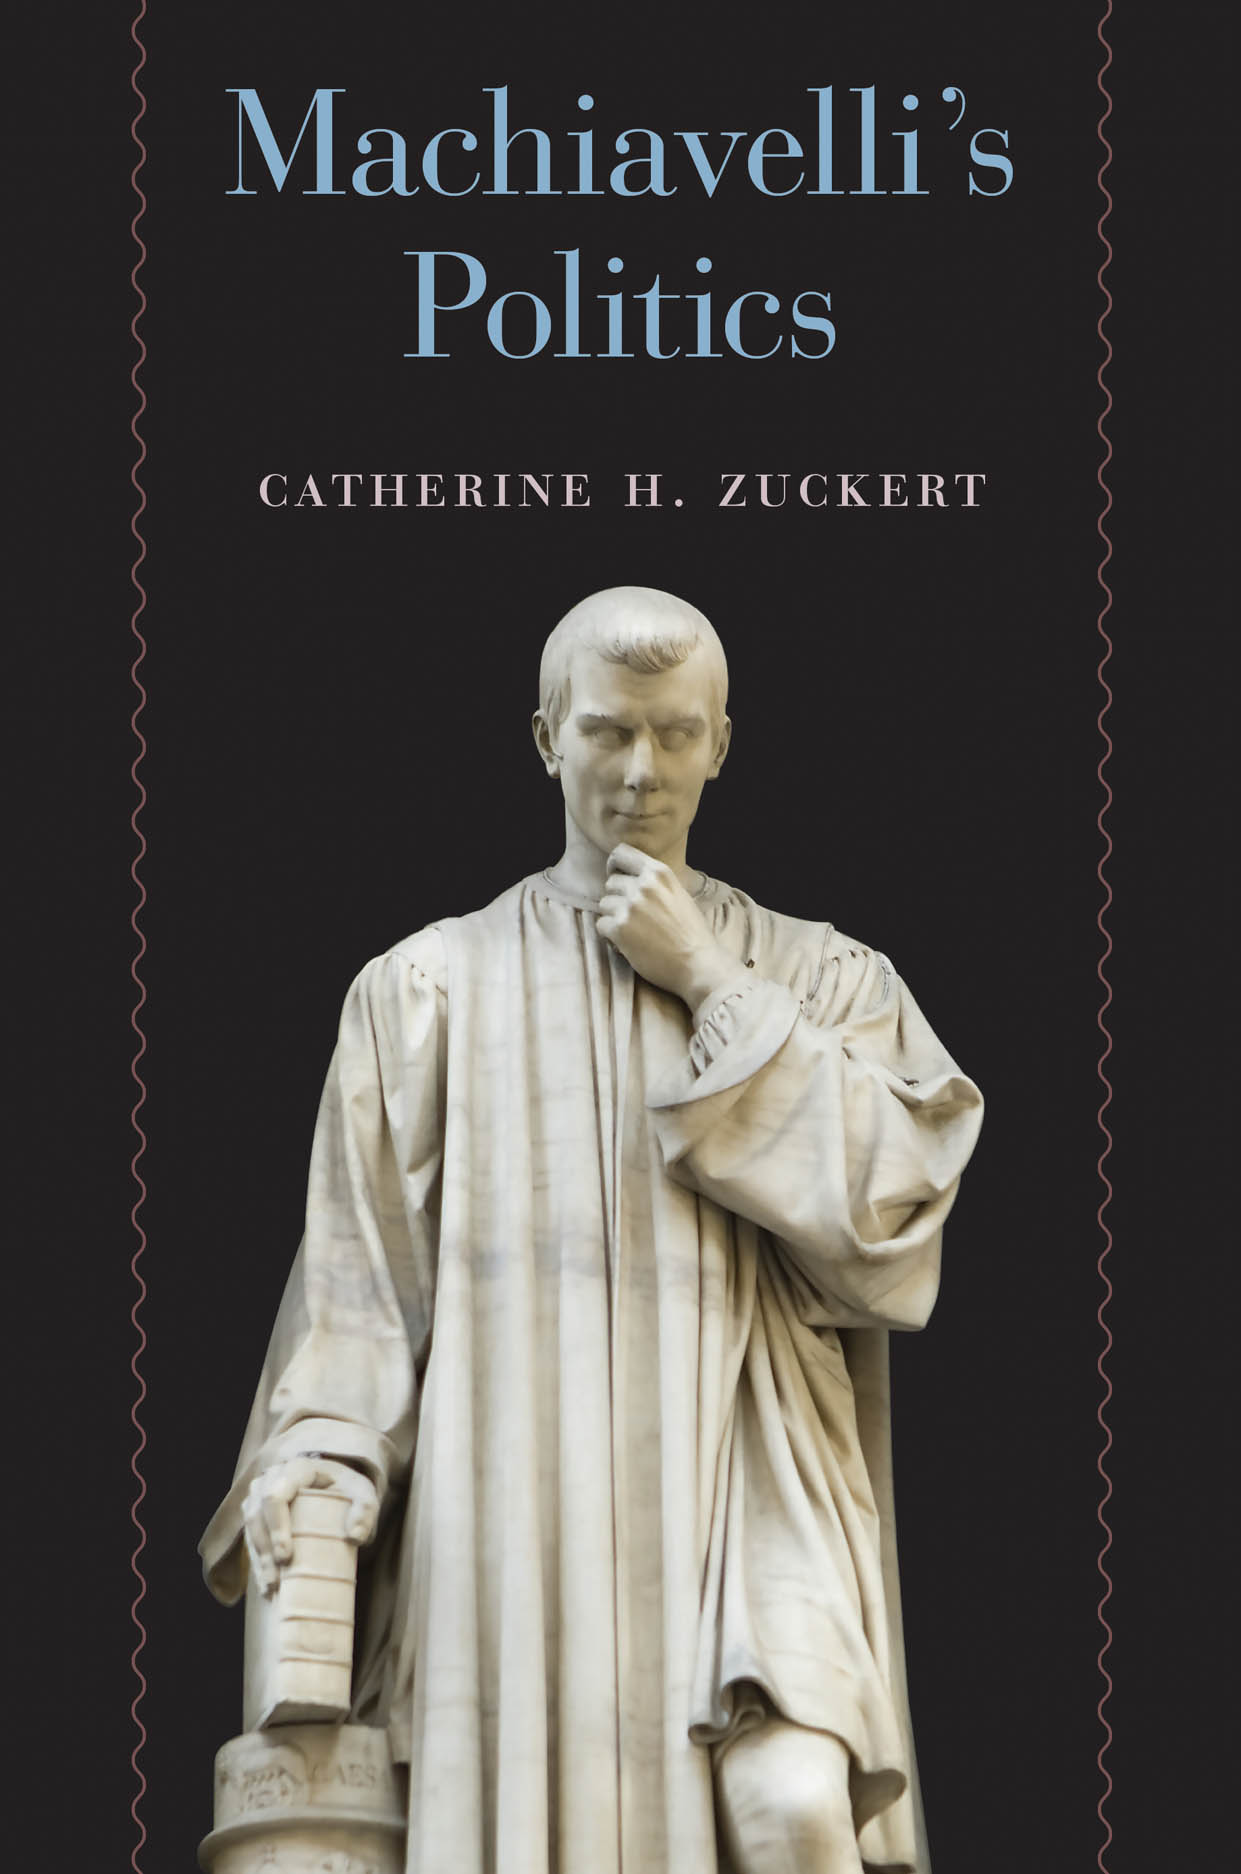 Machiavelli's Politics